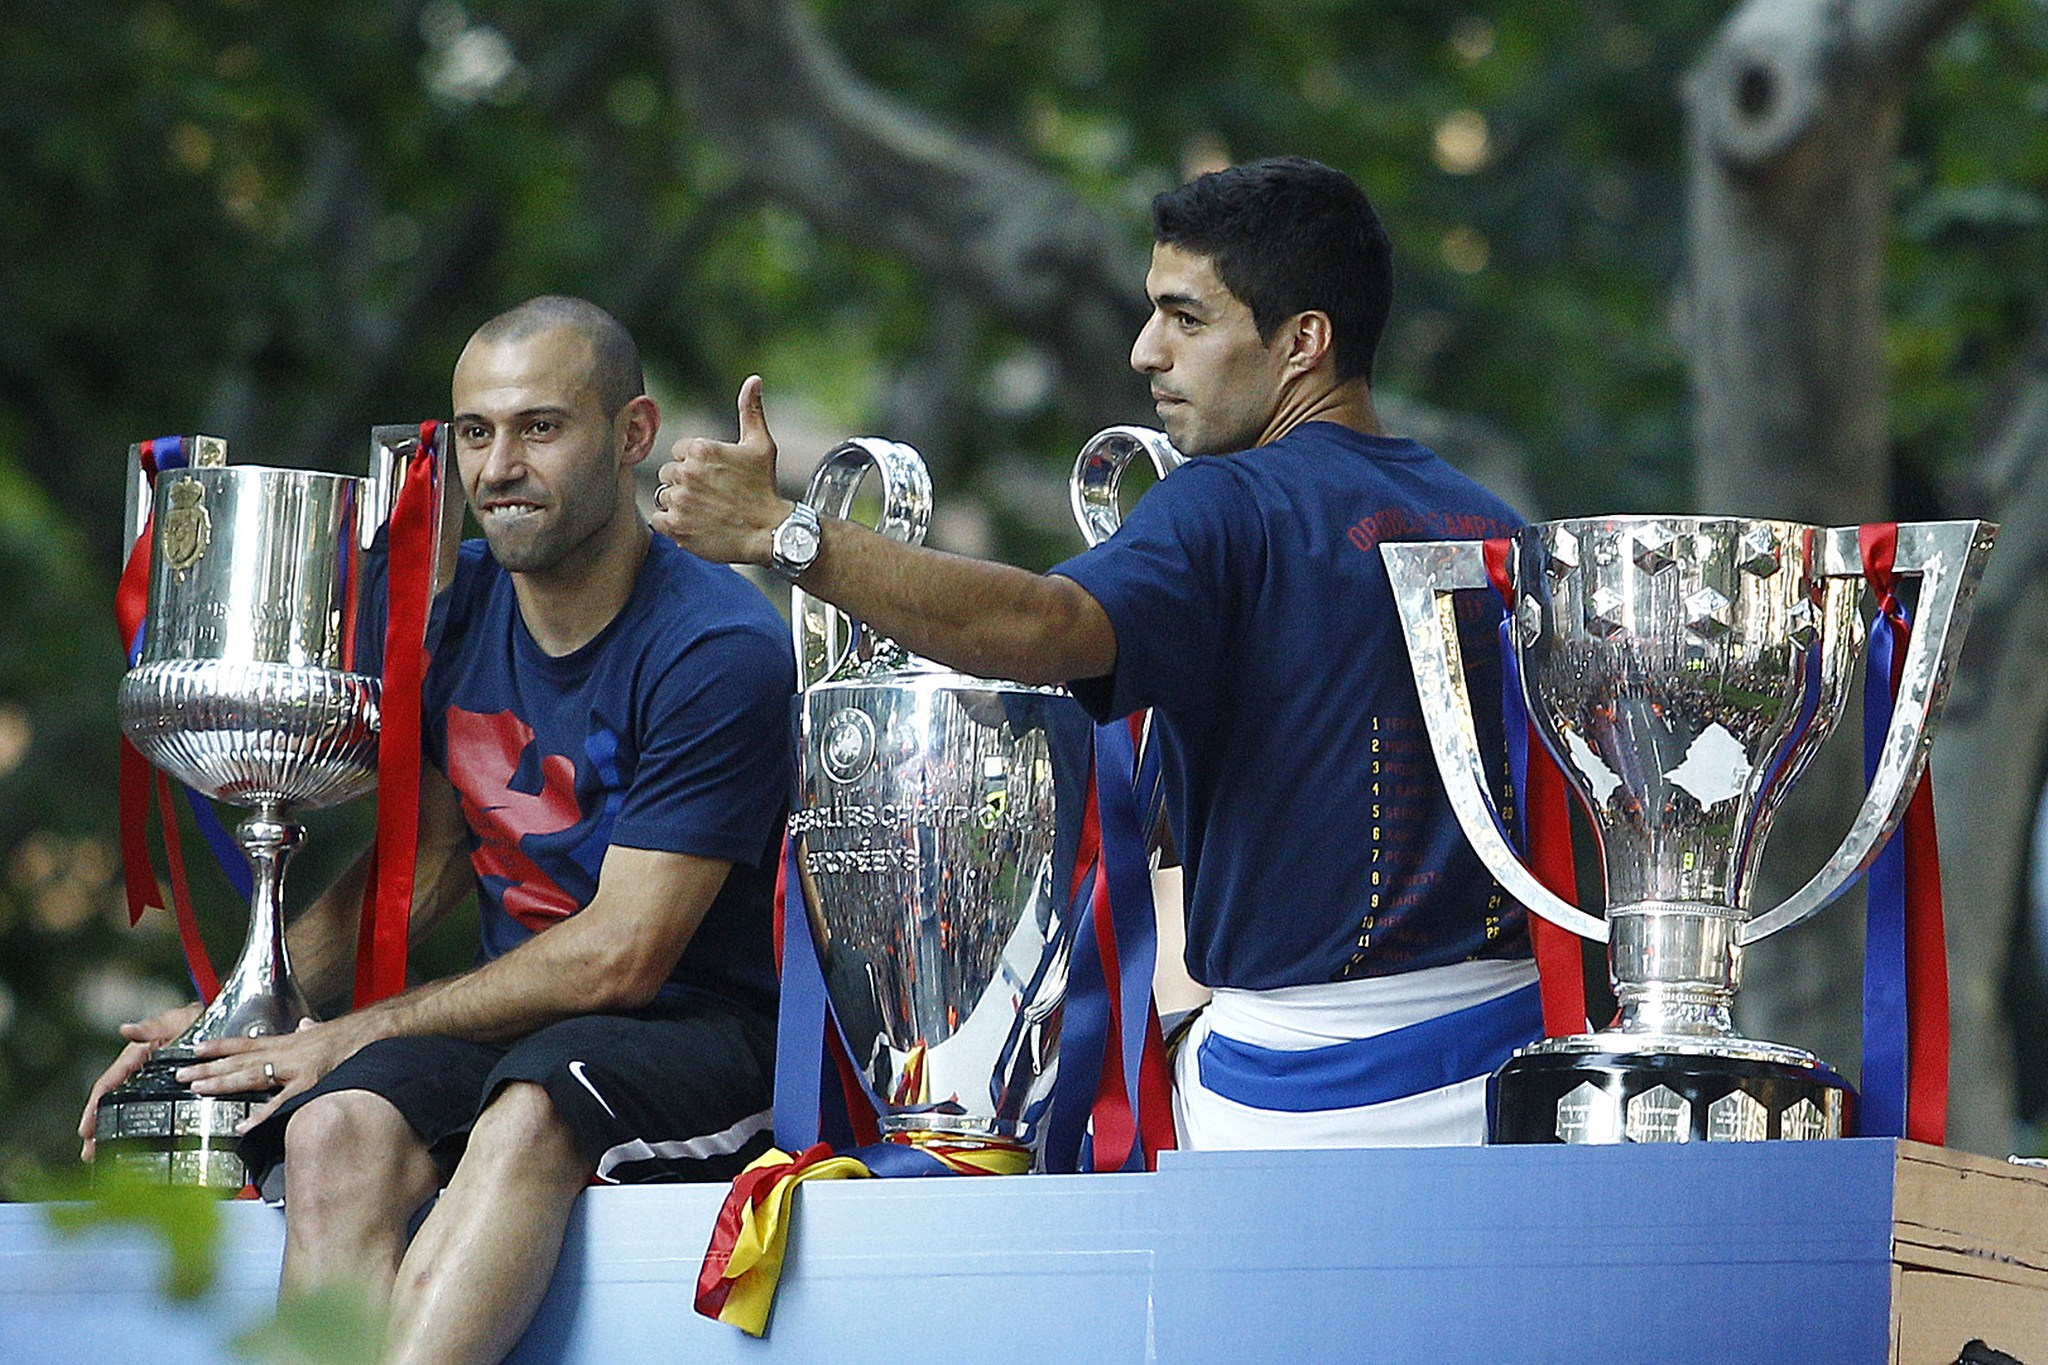 Barcelona's Uruguayan forward Luis Suarez (R) and Barcelona's Argentinian defender Javier Mascherano pose with the three trophies on a bus parading through the streets of Barcelona as the team celebrate its victory over Juventus one day after the UEFA Champions League final football on June 7, 2015. Luis Suarez and Neymar scored second-half goals to give Barcelona a 3-1 Champions League final victory over Juventus on June 6, 2015 as the Spaniards became the first team to twice win the European treble. AFP PHOTO/ QUIQUE GARCIA (Photo credit should read QUIQUE GARCIA/AFP/Getty Images)